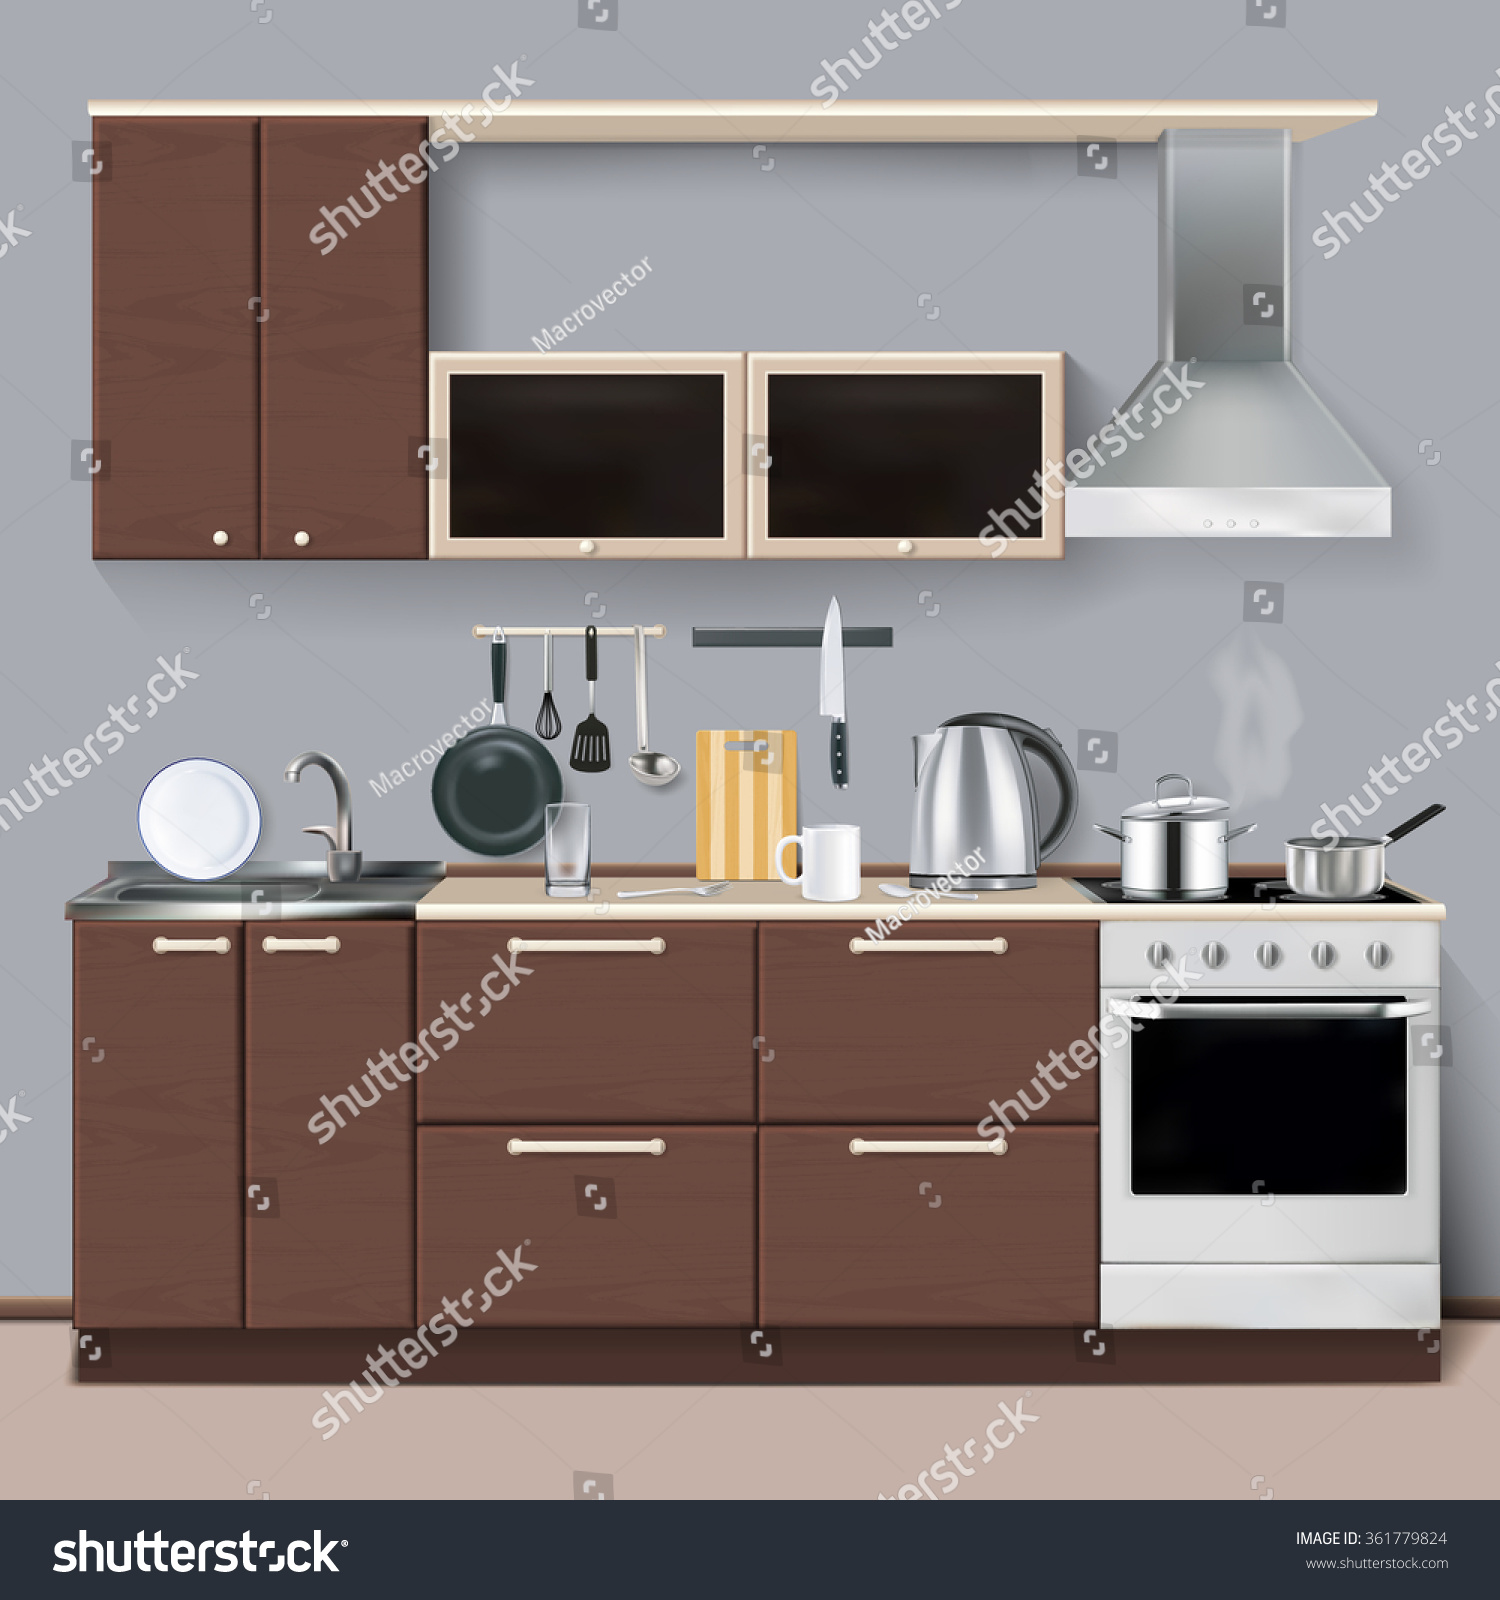 Modern Kitchen Interiors Modern Kitchen Interior Realistic Style Cabinets Stock Vector